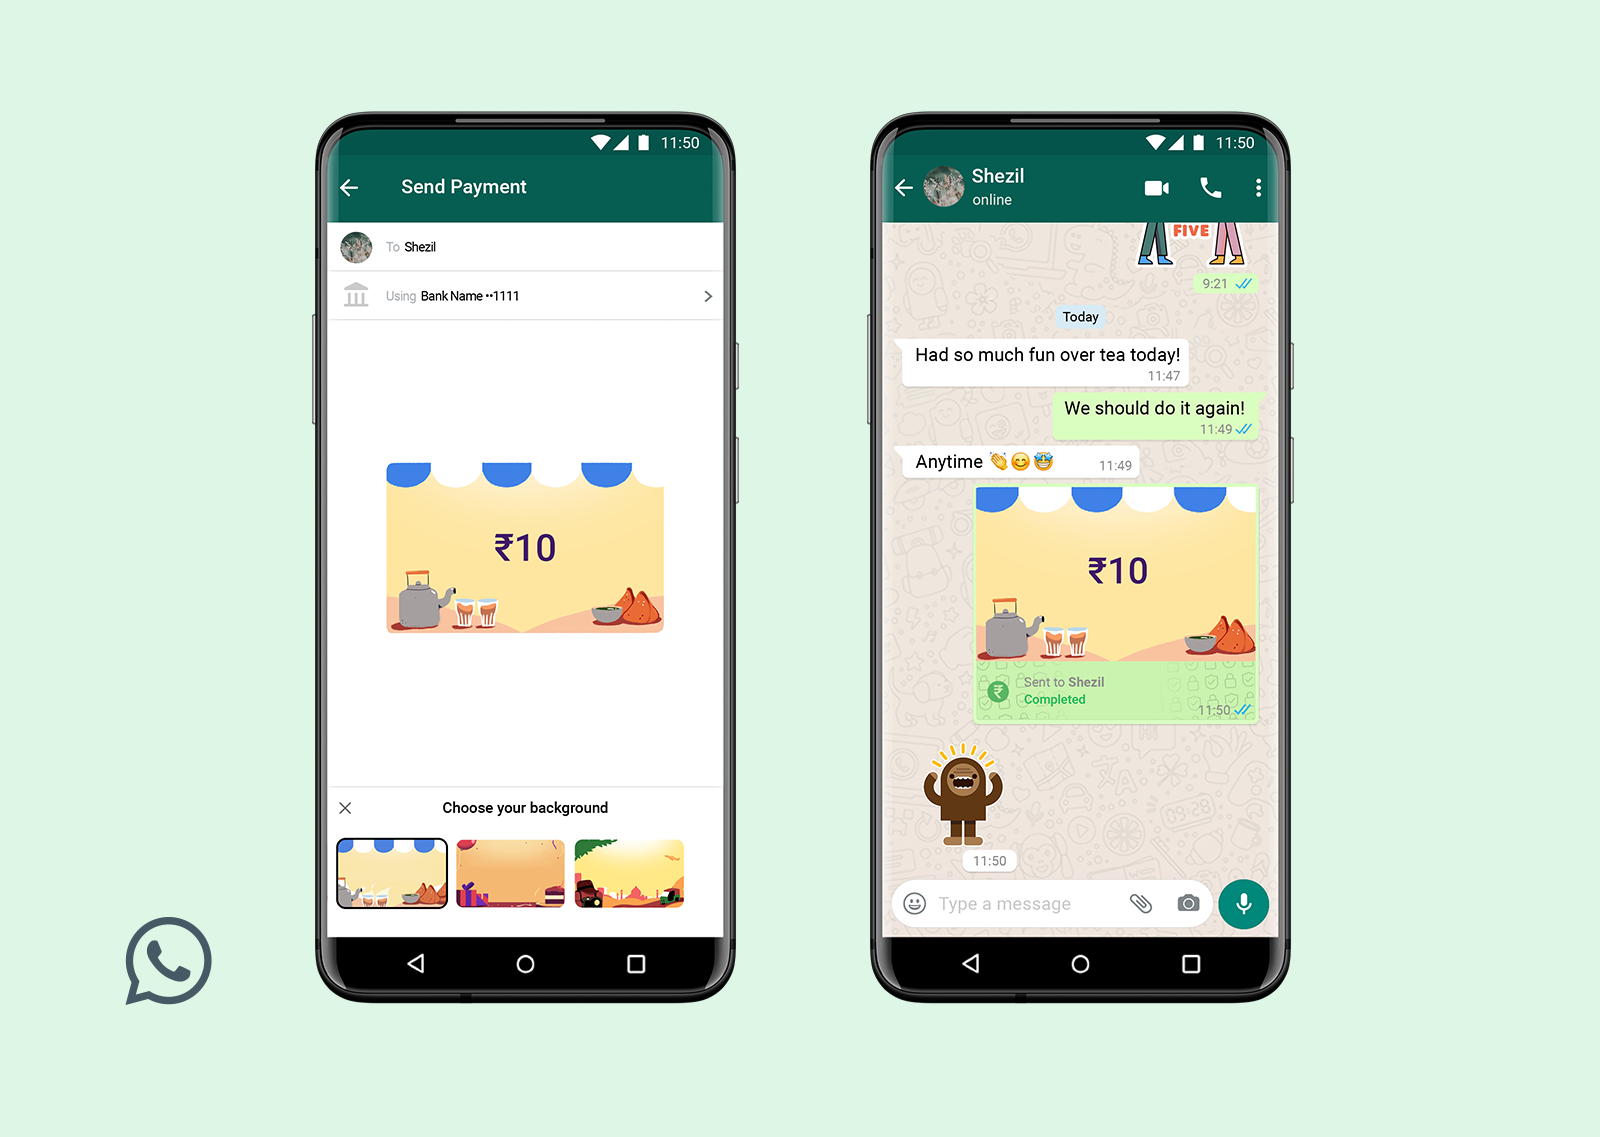 Sending money through WhatsApp gets livelier now with Payments Backgrounds